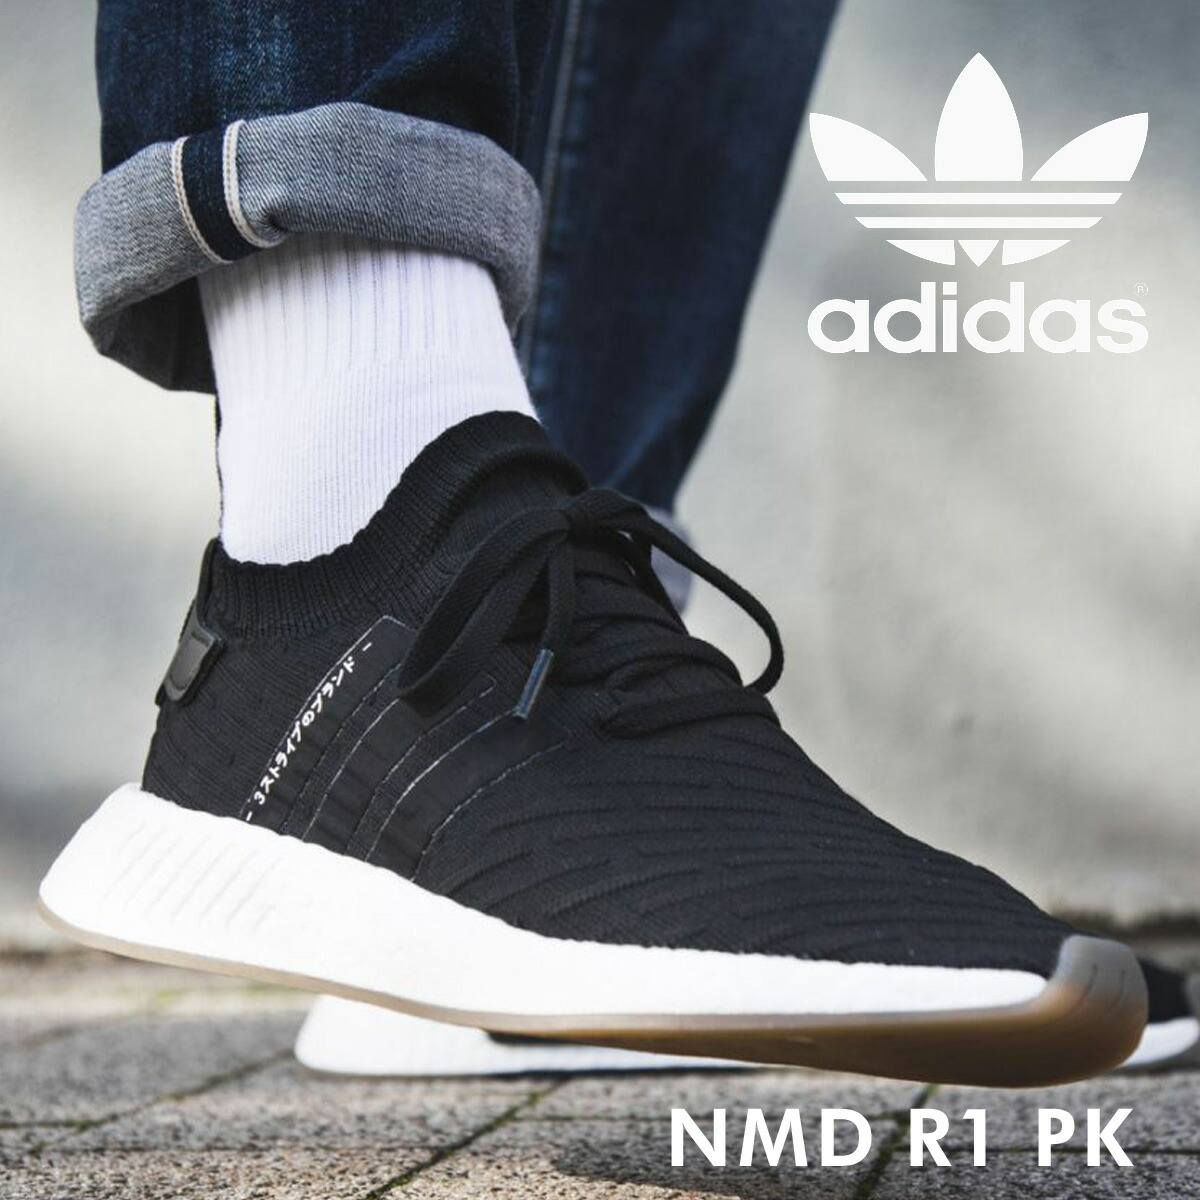 competitive price 4fb7f 3946c adidas originals NMD R1 PK Adidas sneakers nomad men BY9696 shoes black  [10/28 Shinnyu load] [1710]